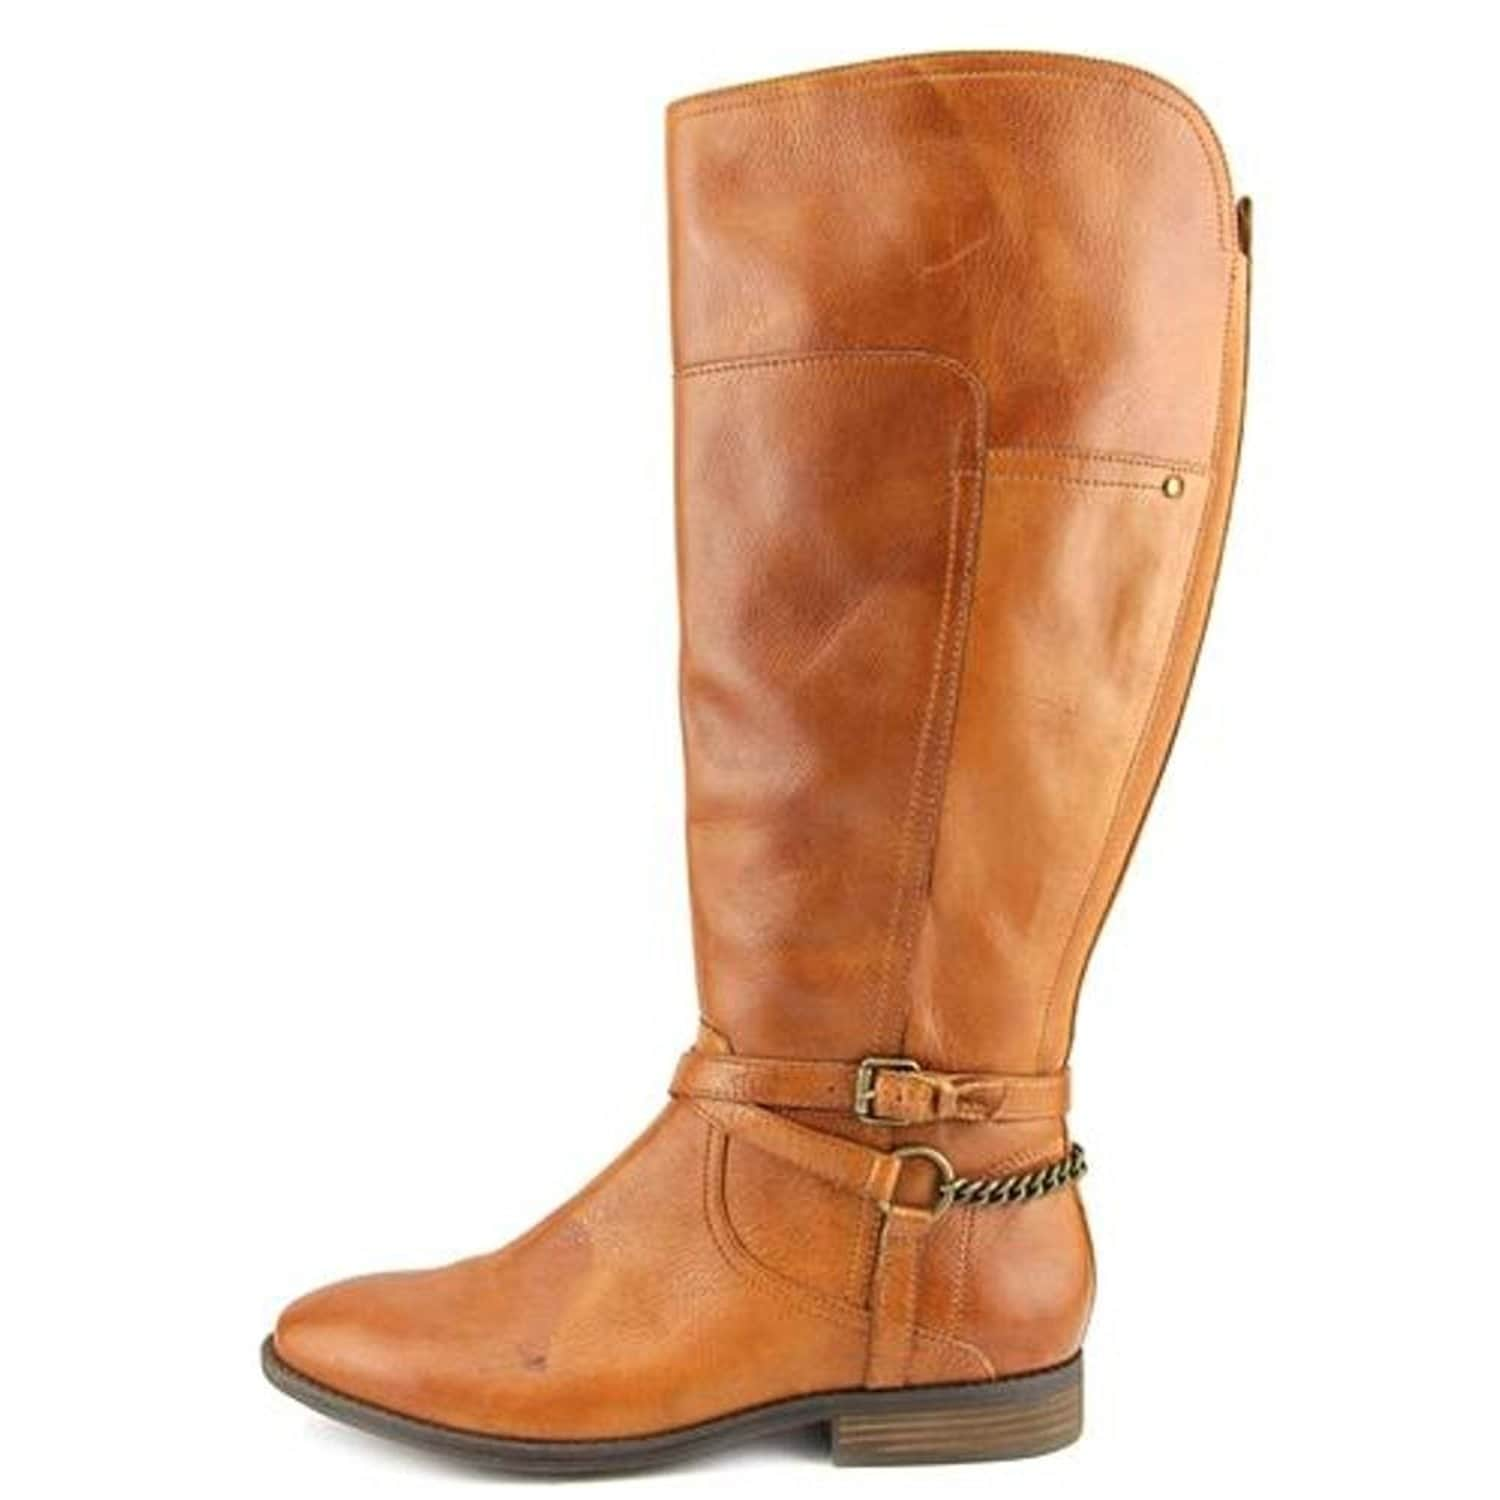 8e065e507bf94 Shop Marc Fisher Womens ALEXIS Leather Closed Toe Mid-Calf Fashion Boots -  Free Shipping On Orders Over $45 - Overstock - 17351881